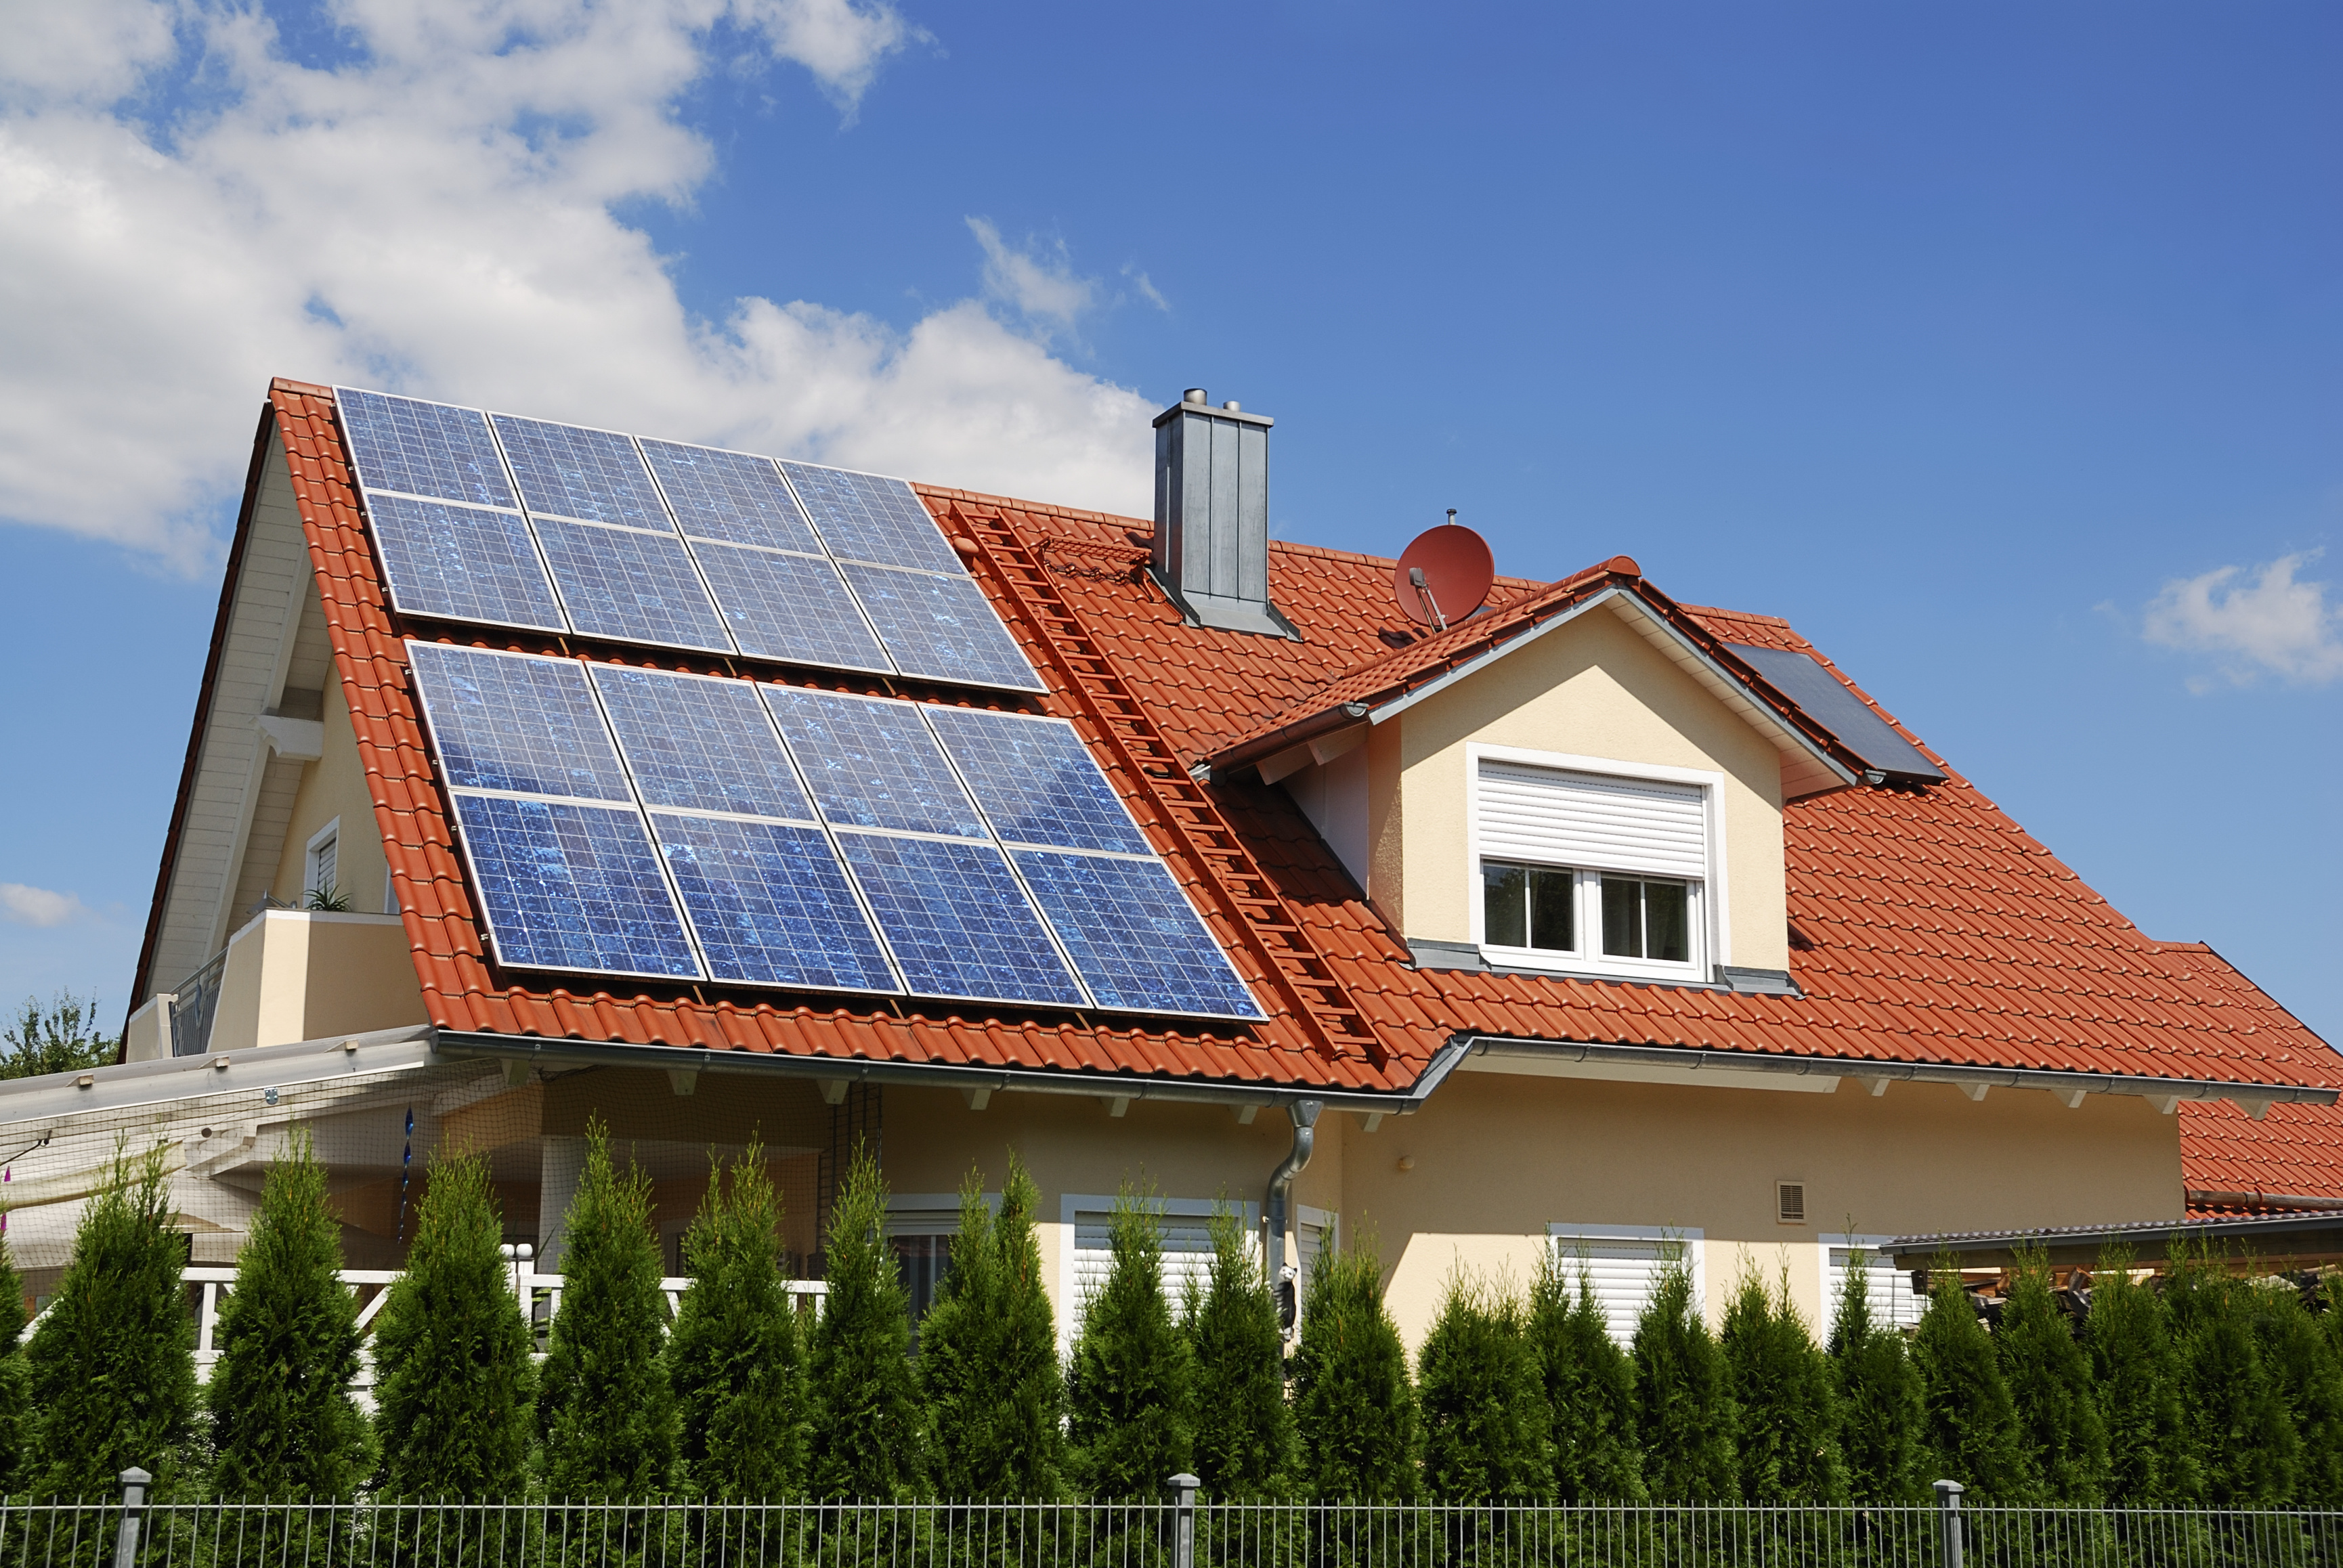 House with residential solar system for article about the cost of tariffs